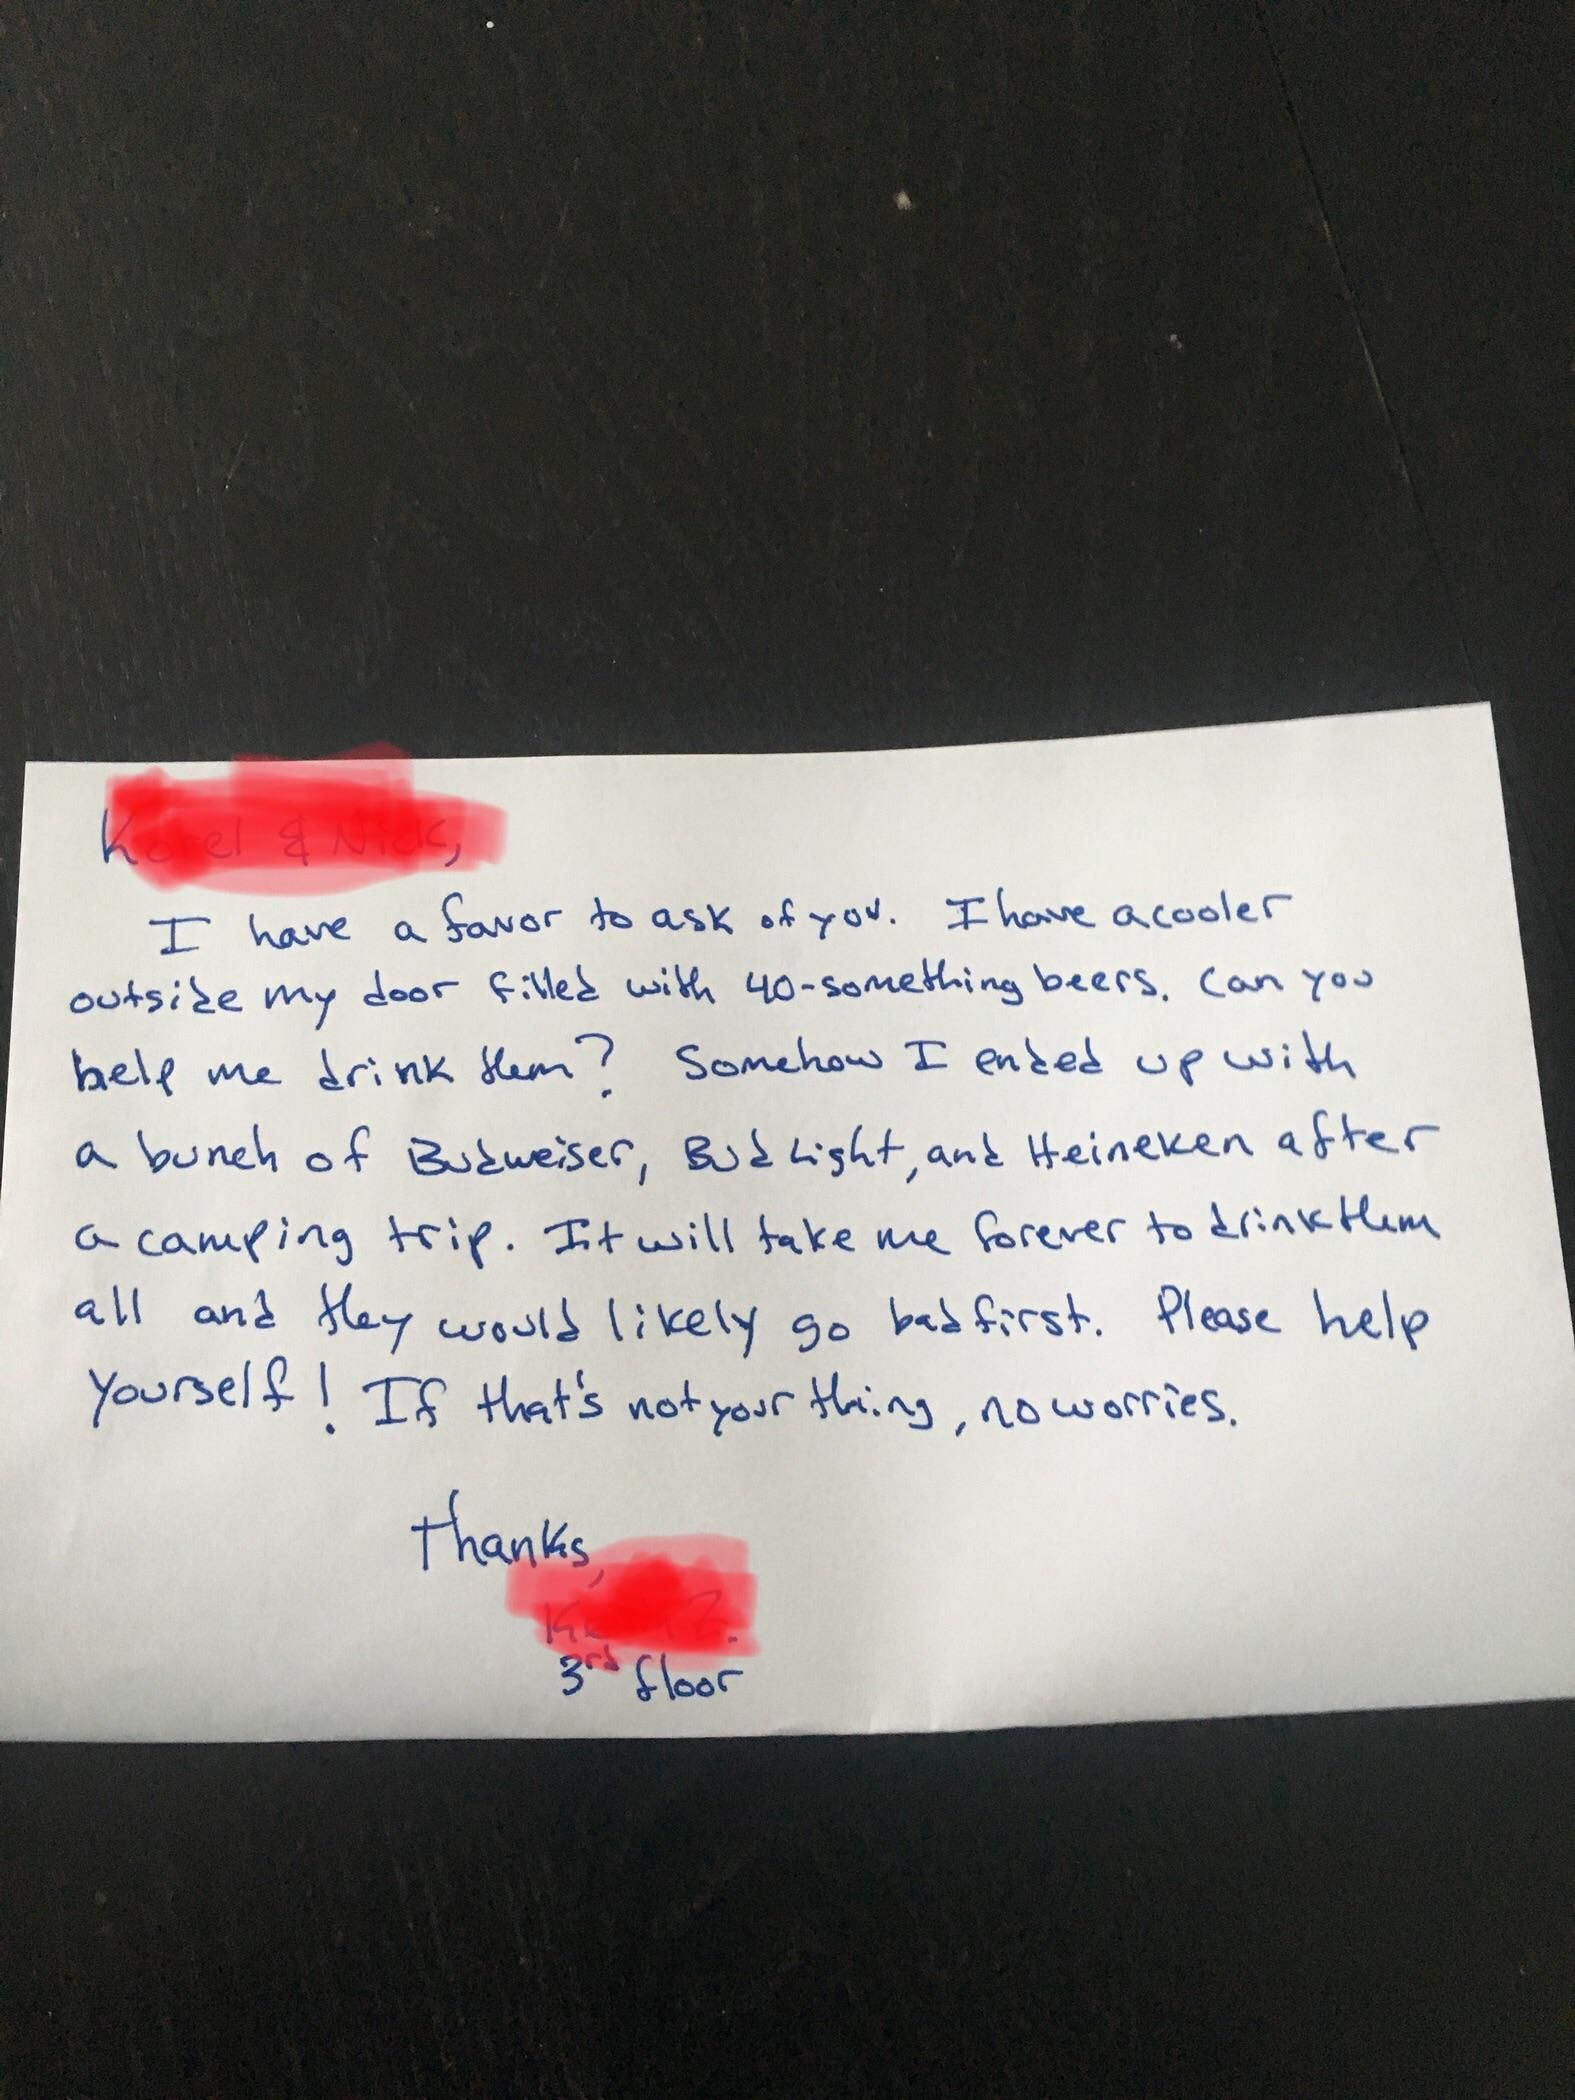 A letter from the guy who lives upstairs